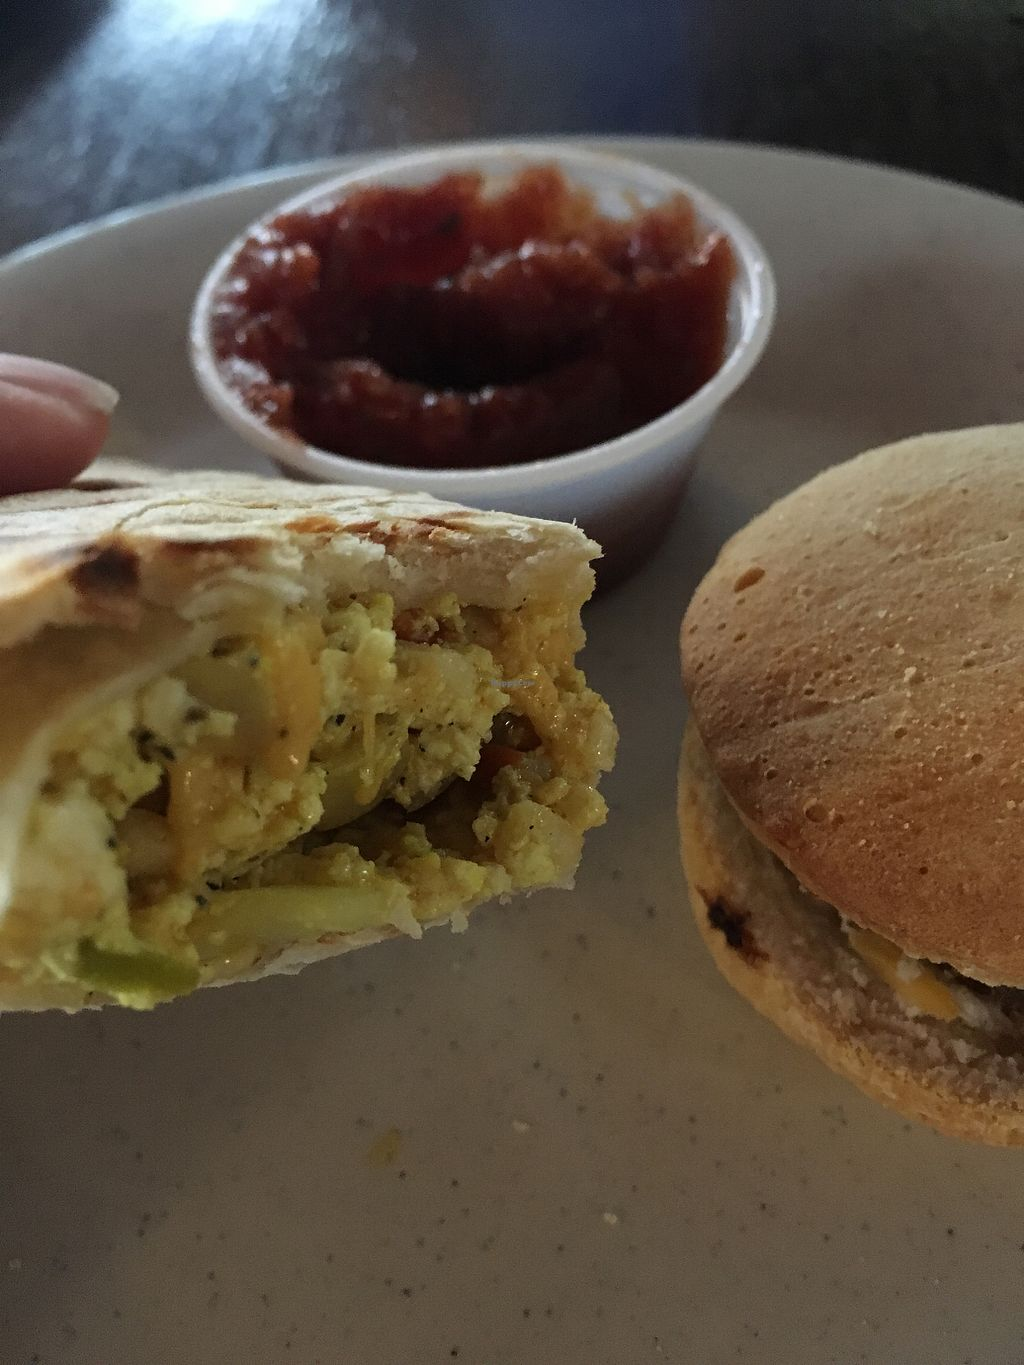 """Photo of Drunken Monkey Coffee Bar  by <a href=""""/members/profile/rhona88"""">rhona88</a> <br/>Vegan burrito and sausage sandwich  <br/> November 24, 2017  - <a href='/contact/abuse/image/15477/328752'>Report</a>"""